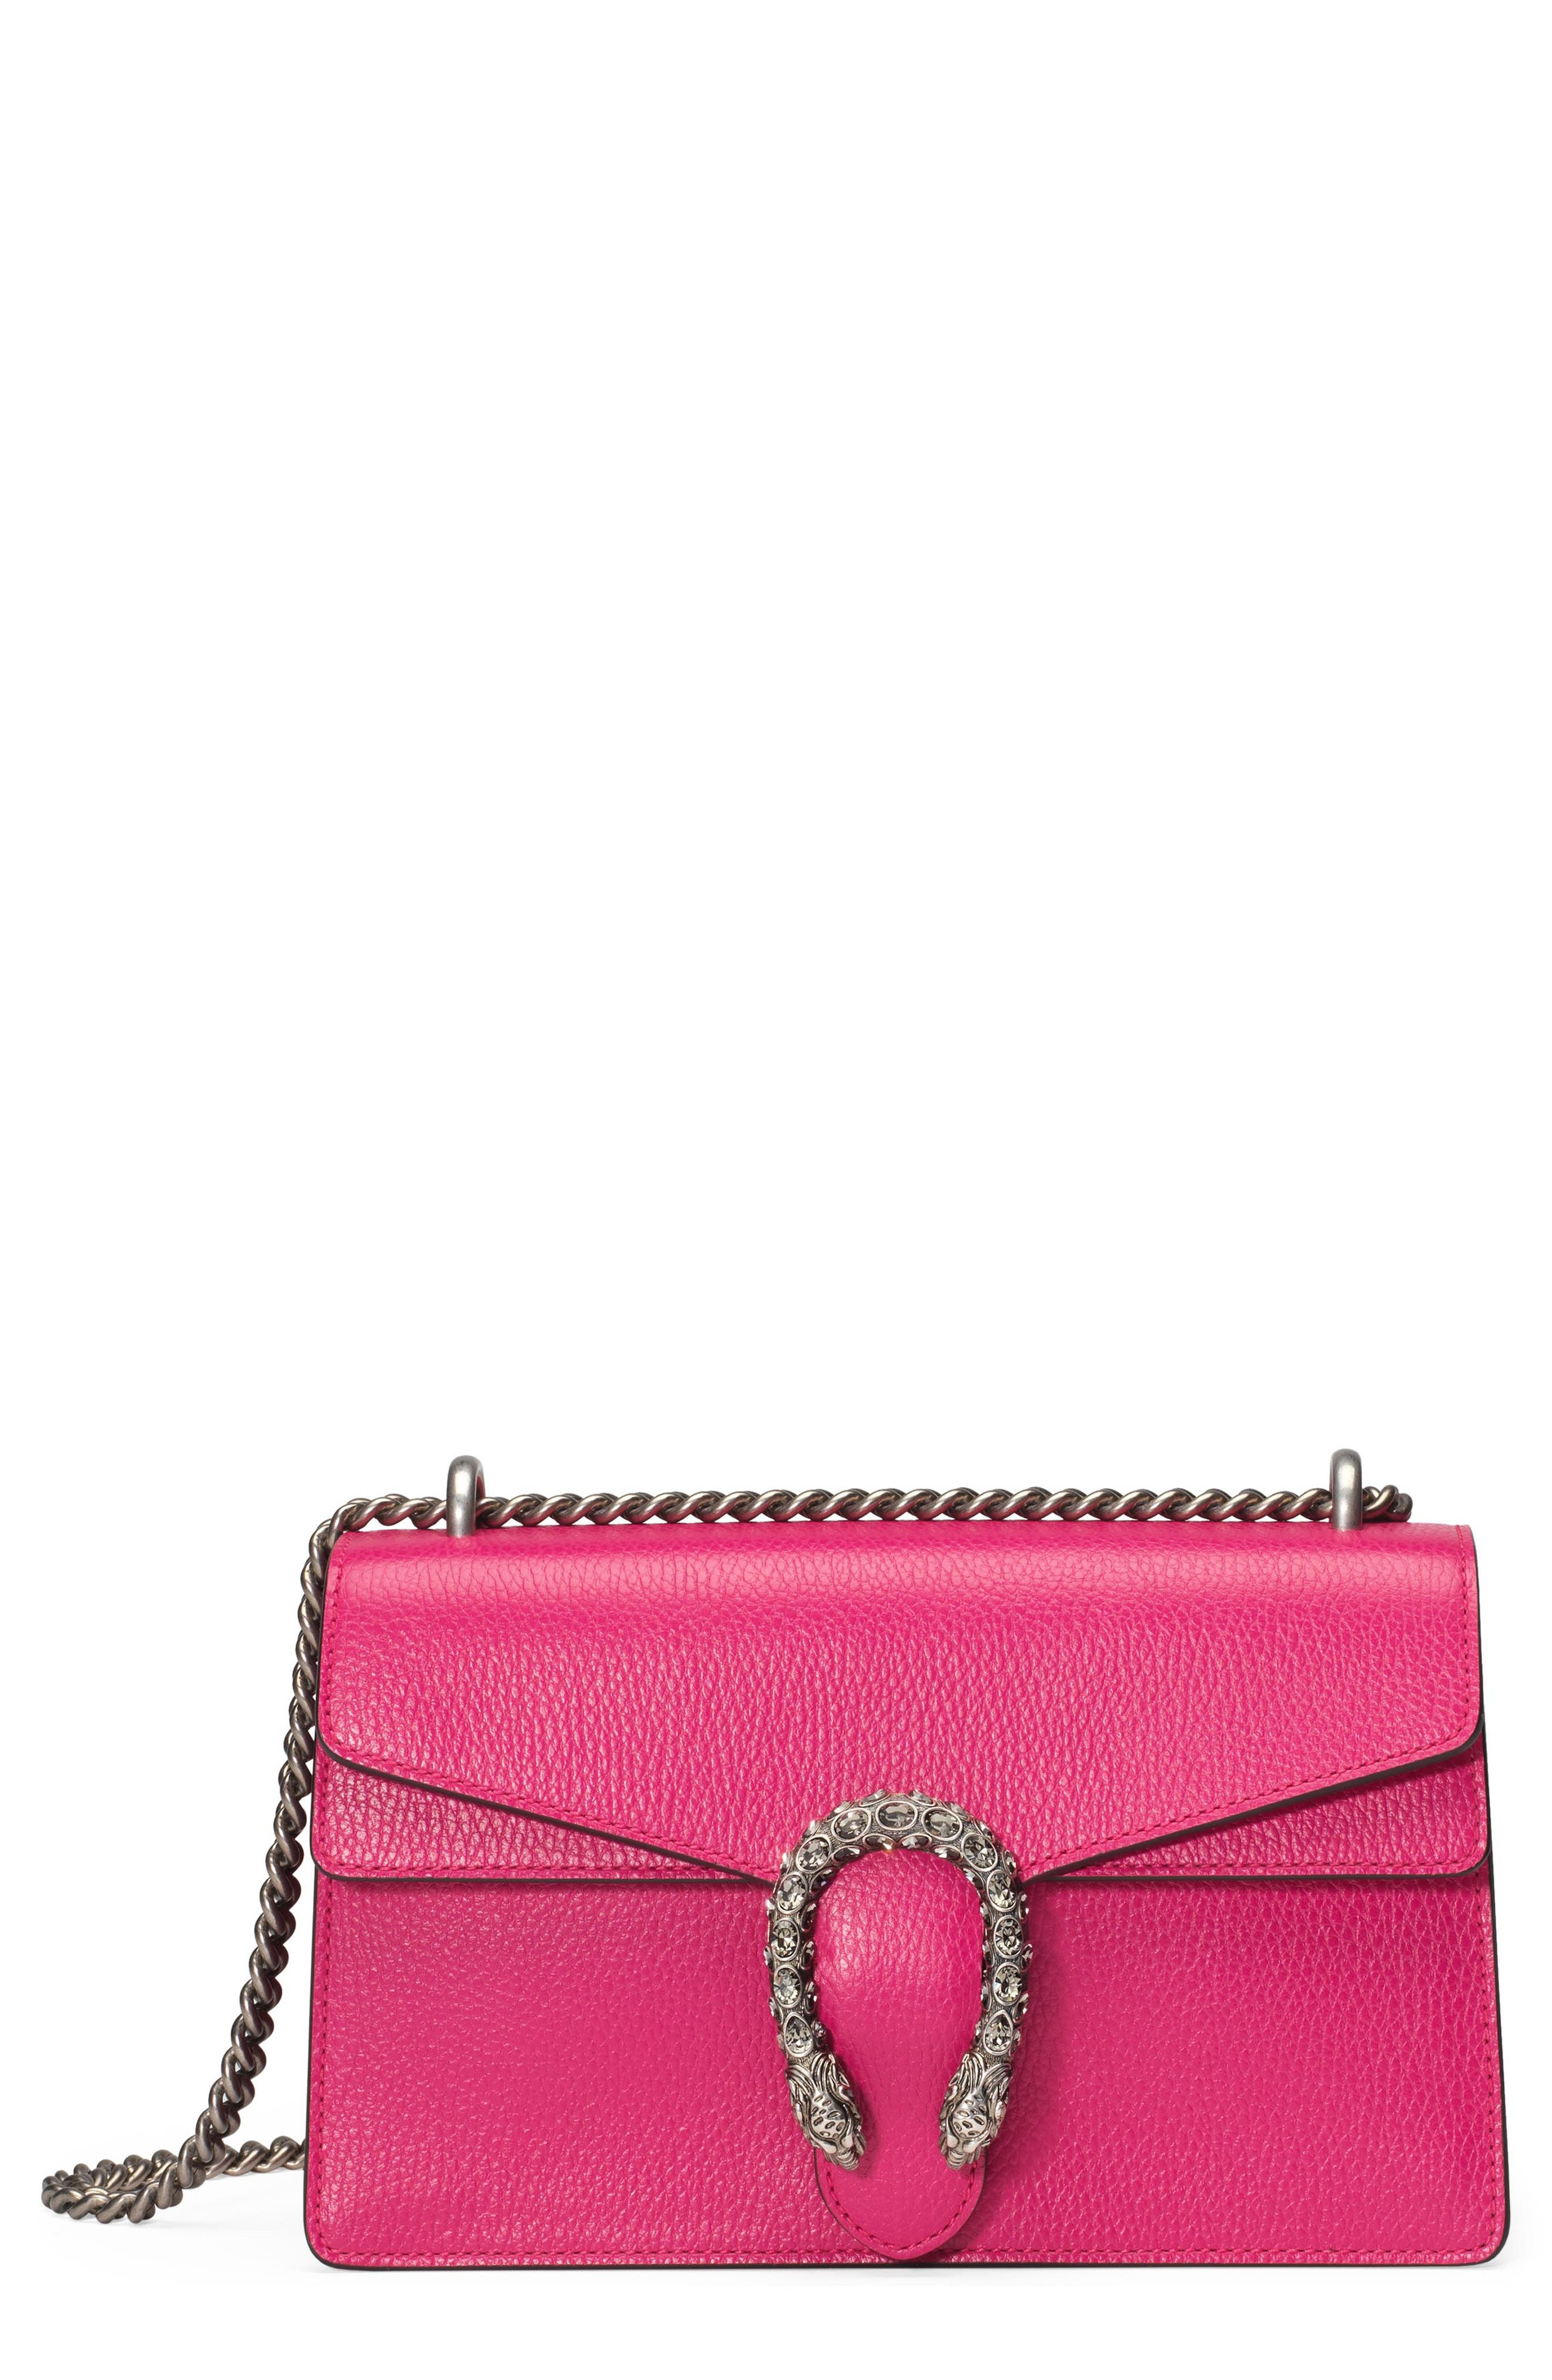 GUCCI SMALL DIONYSUS LEATHER SHOULDER BAG - PINK